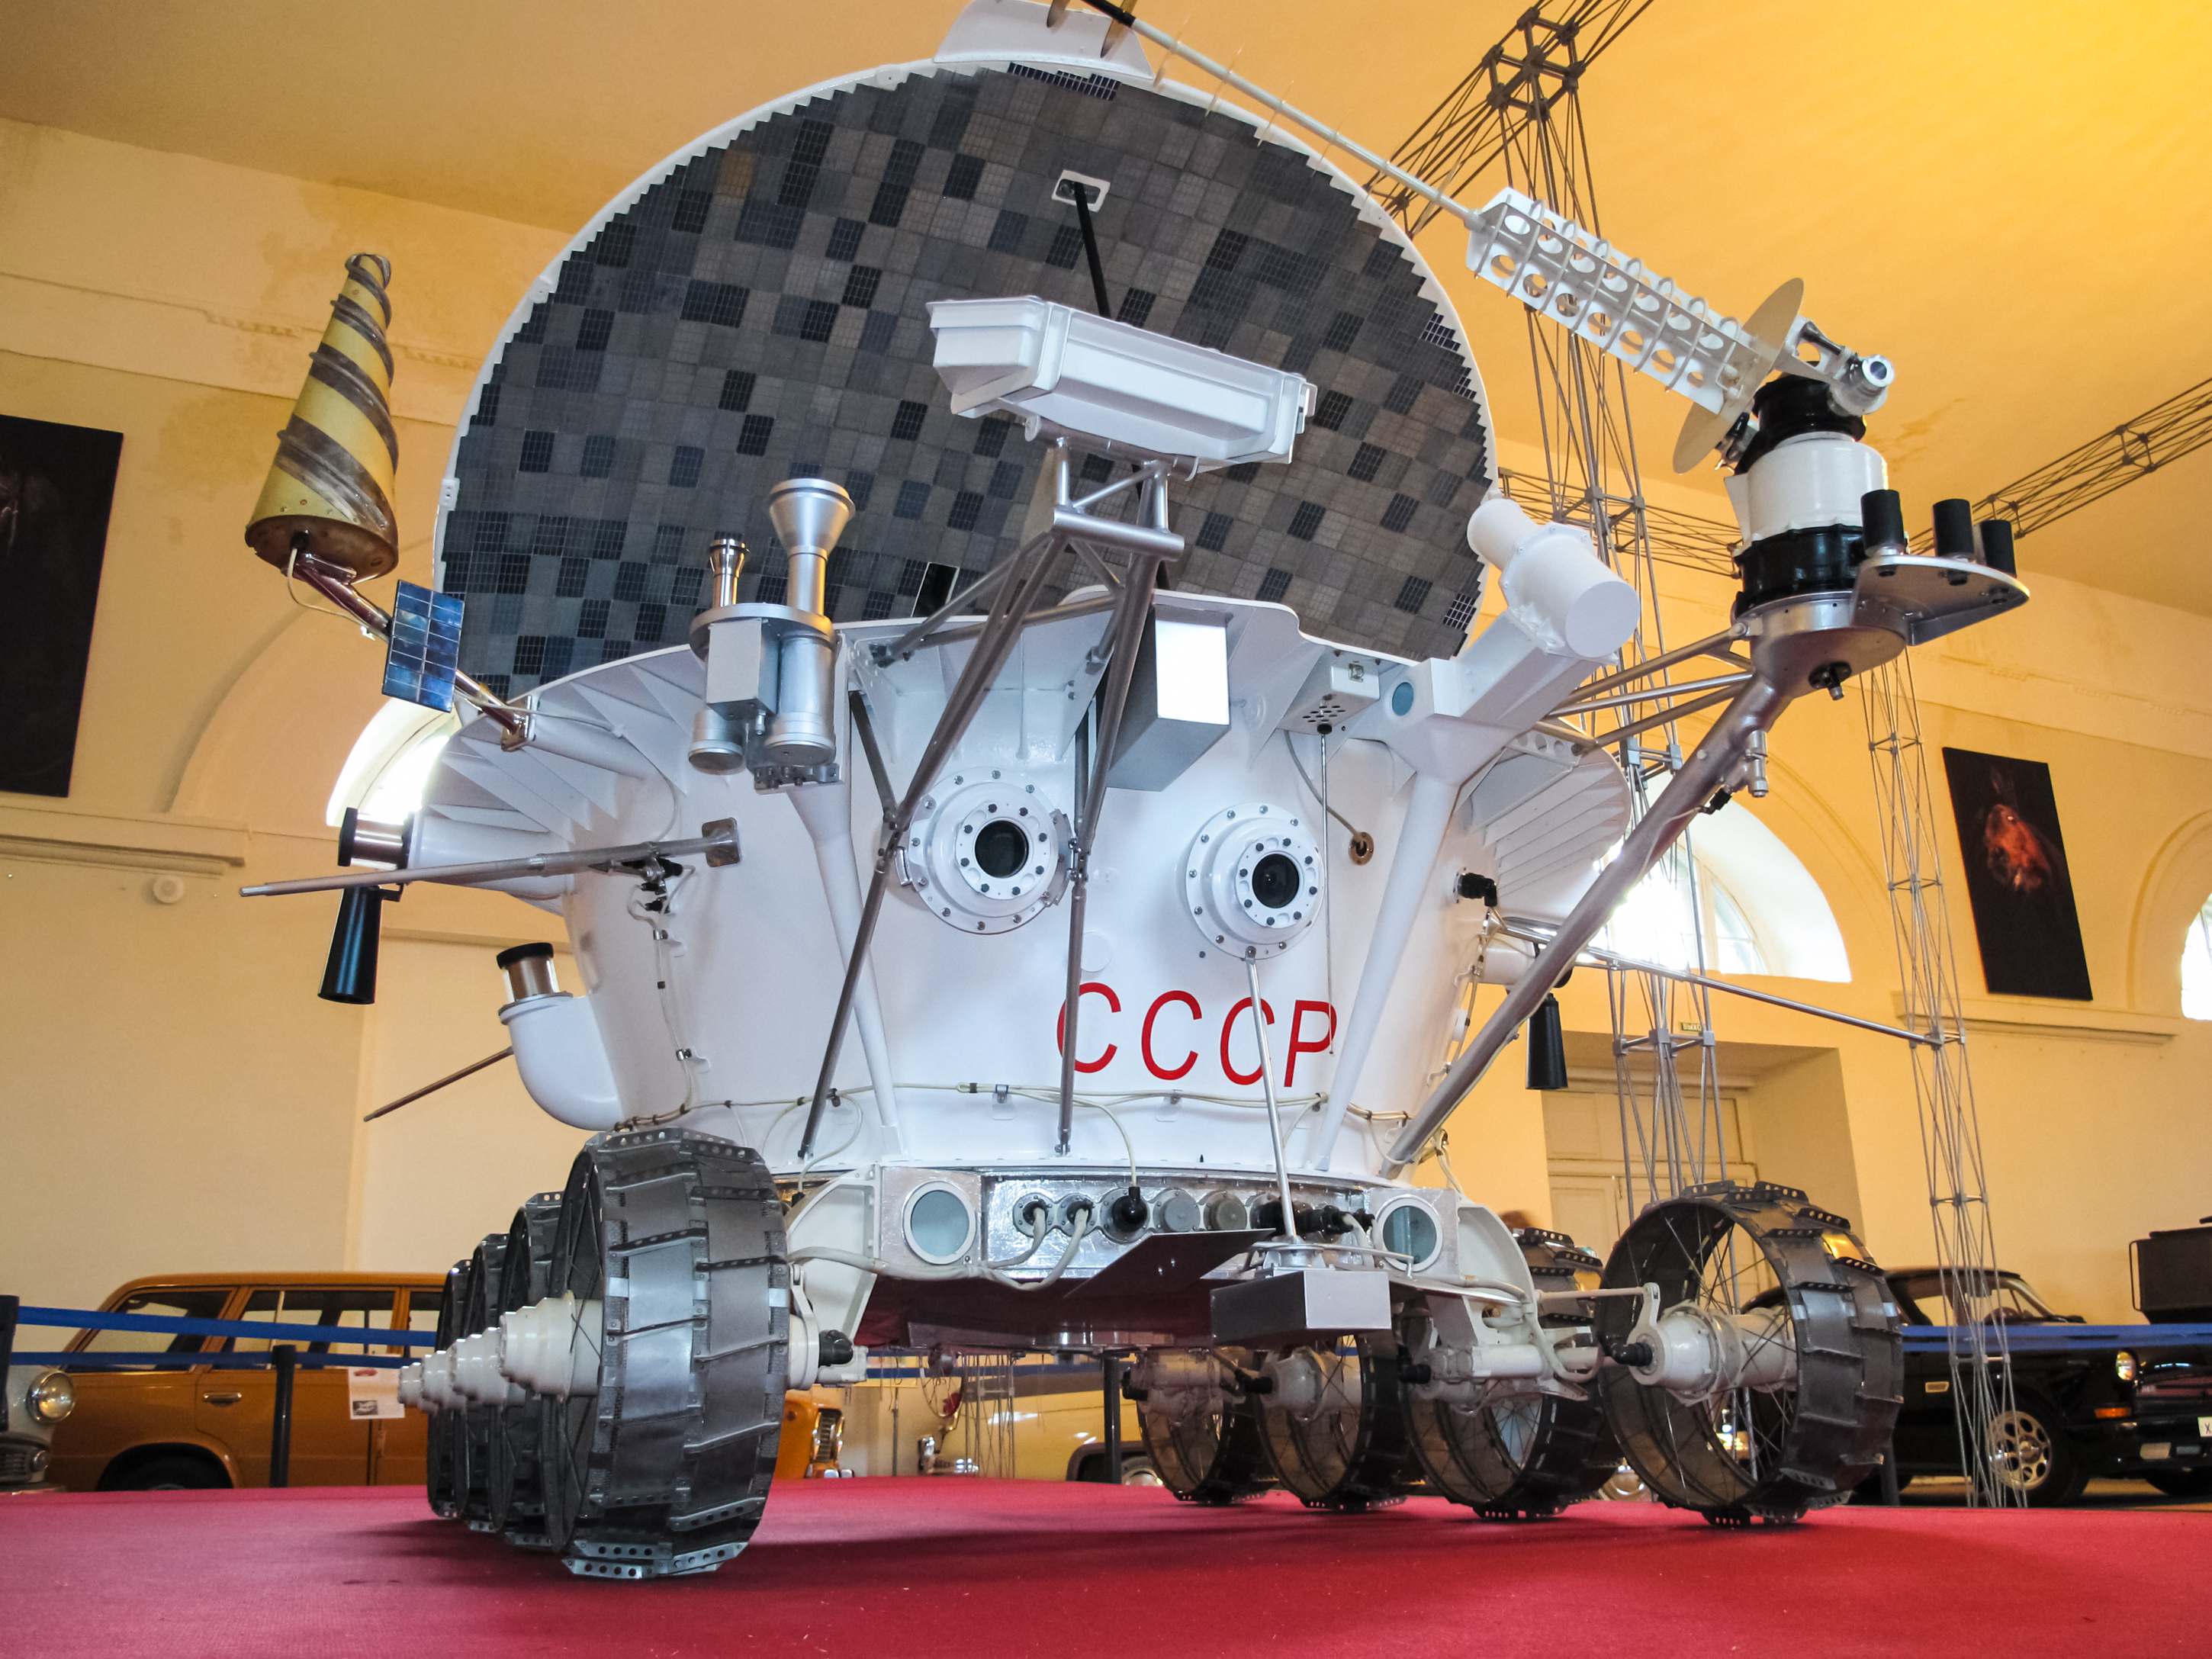 USSR space history